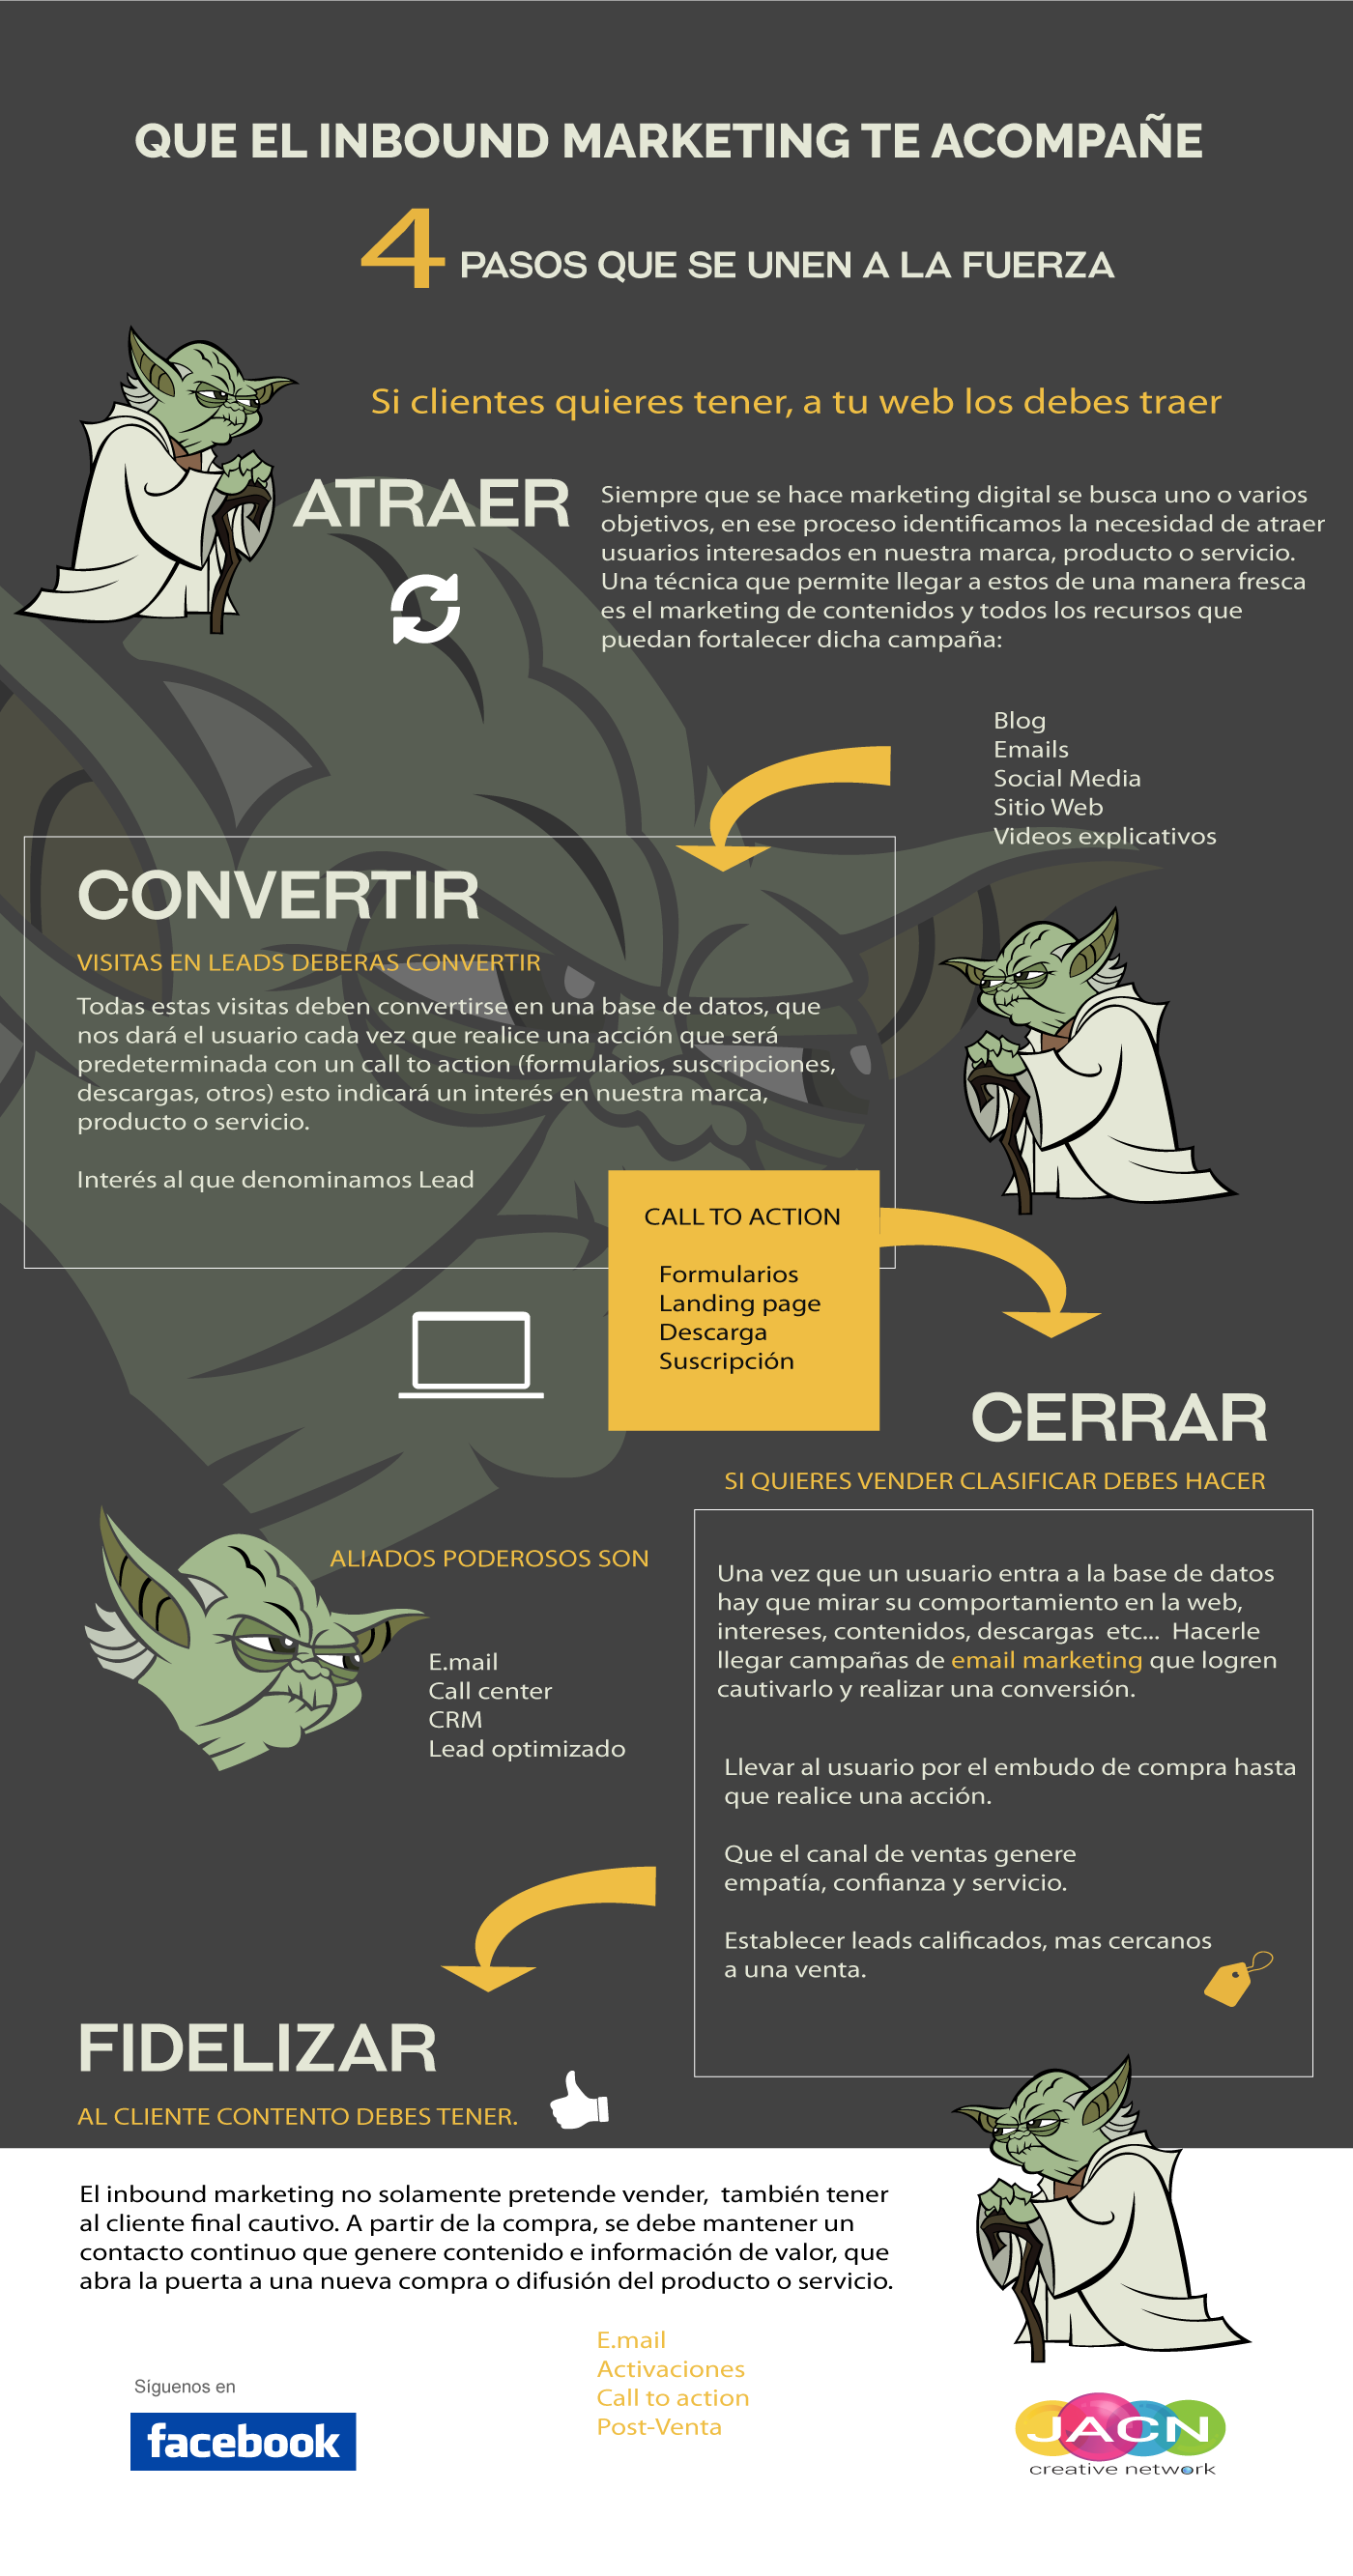 Que el Inbound Marketing te acompañe